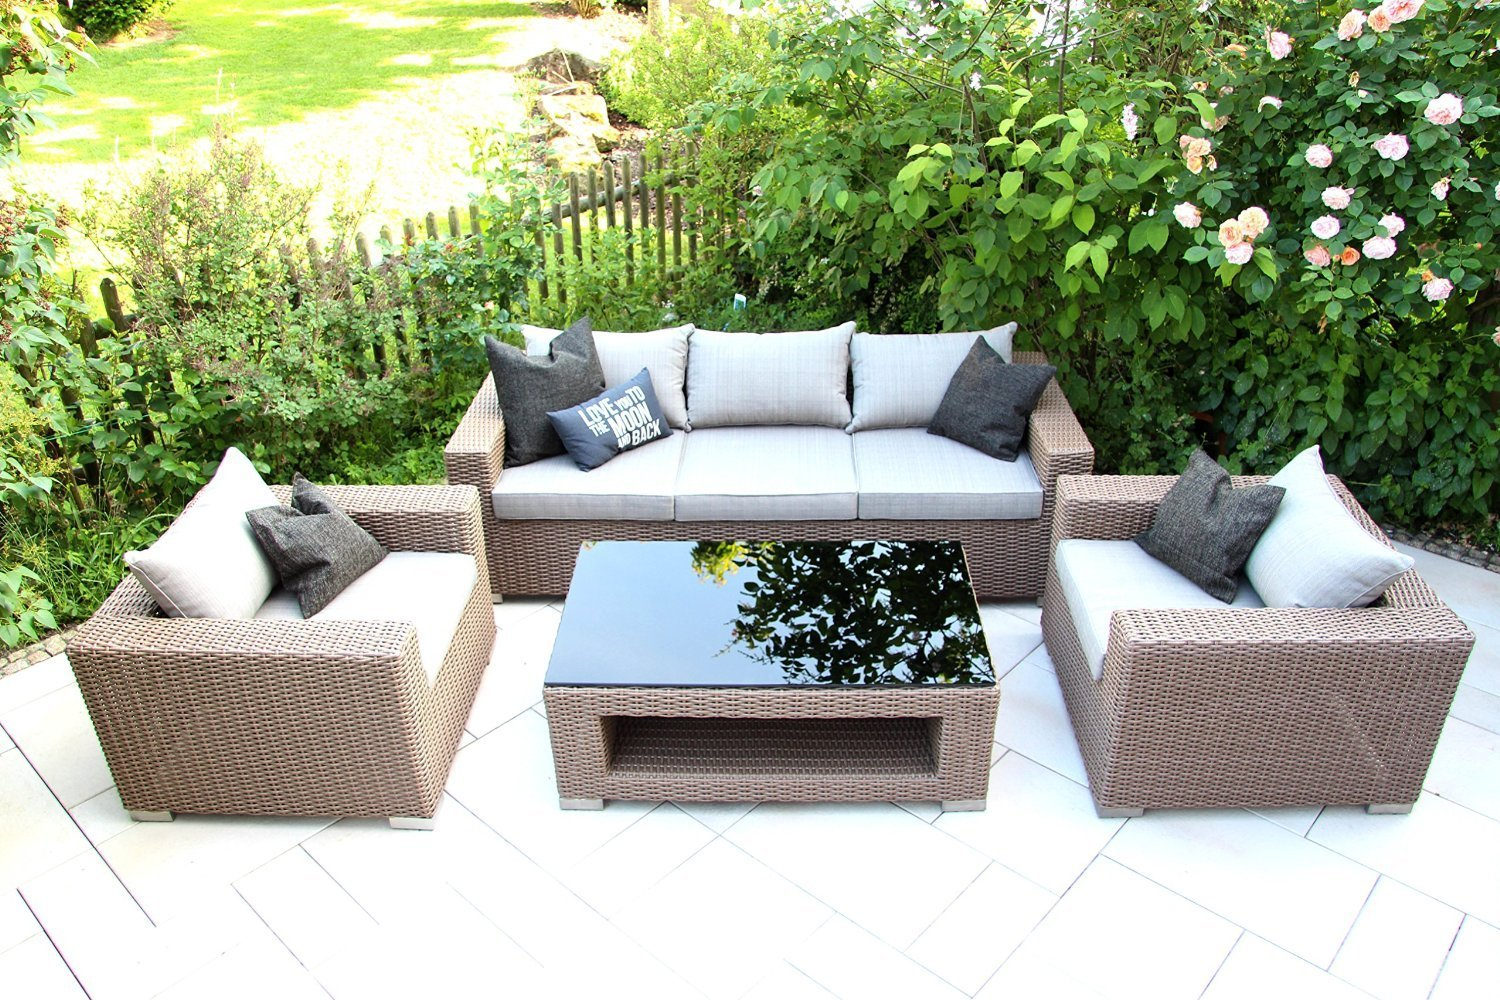 Outdoor Lounge Mobel Set Chilli By Garderobia Geflecht Toupe